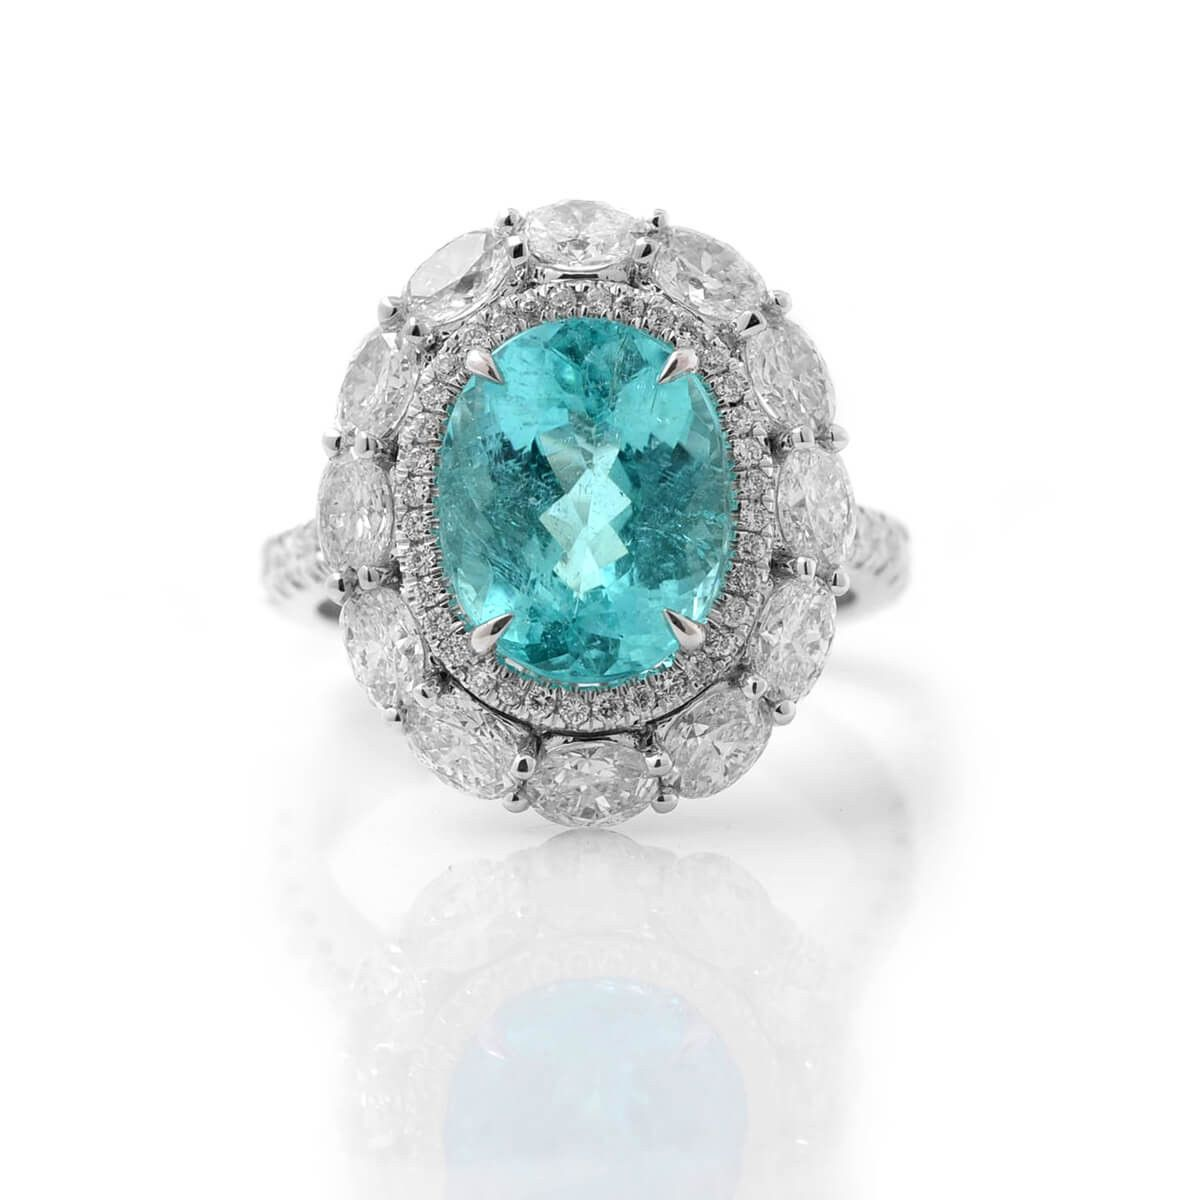 Natural GB Mozambique Tourmaline Ring, 3 60 Ct  (5 85 Ct  TW), GRS  Certified, GRS2018-058315, Unheated